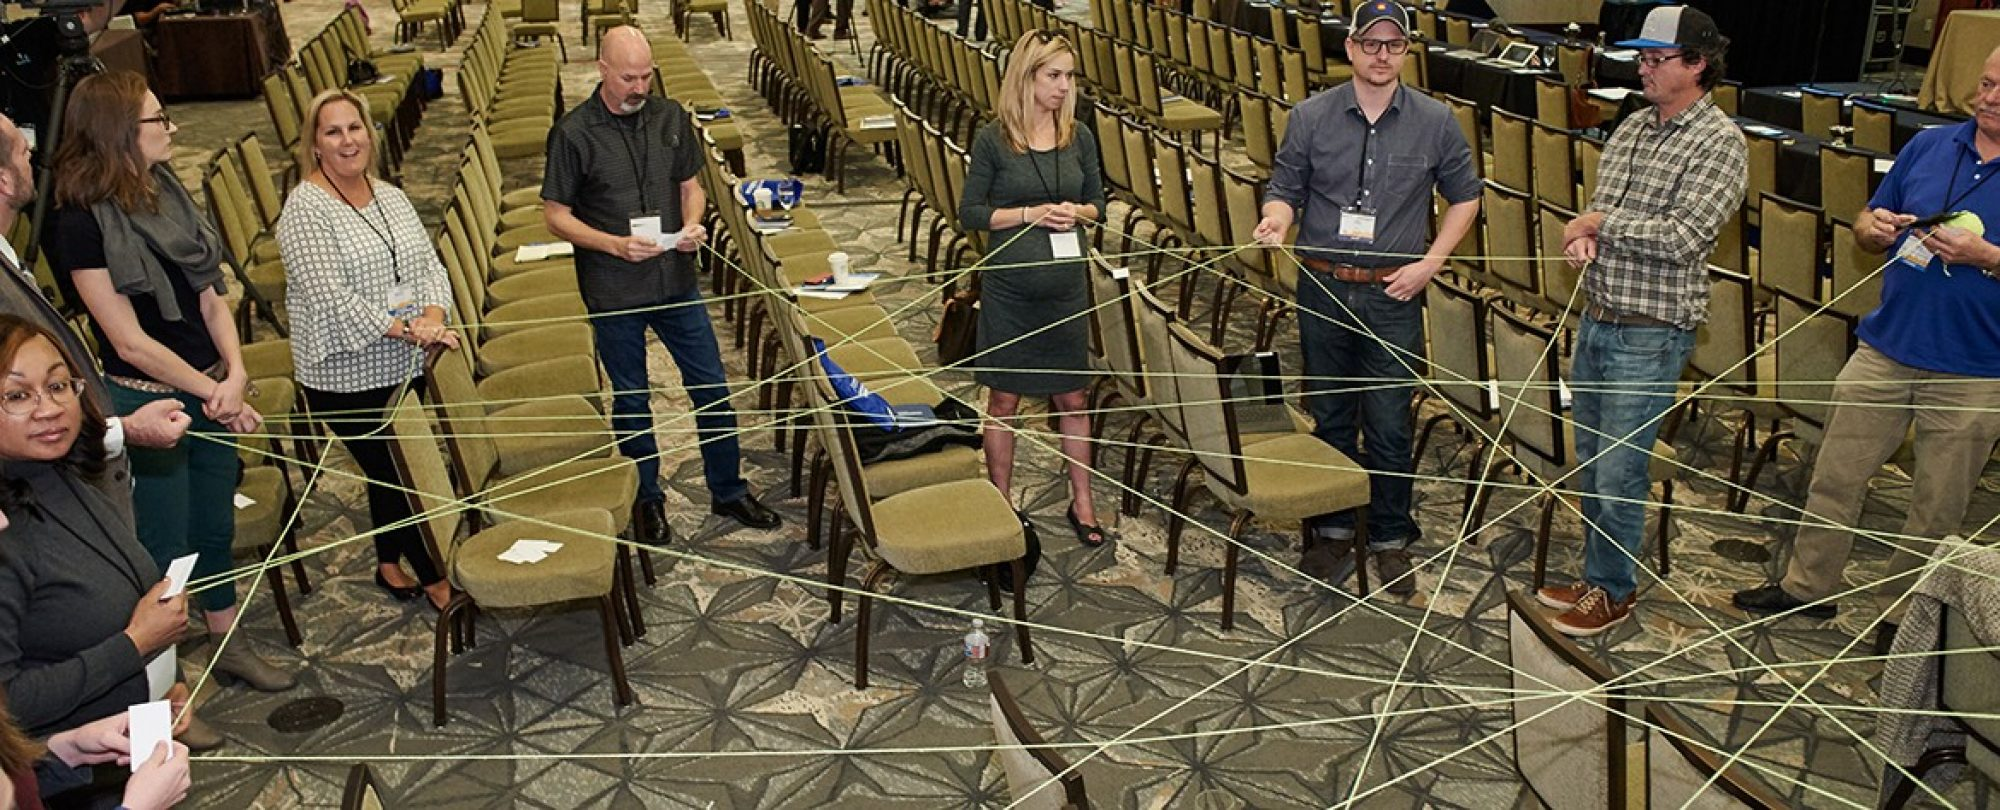 Group of individuals working on a group project with string.